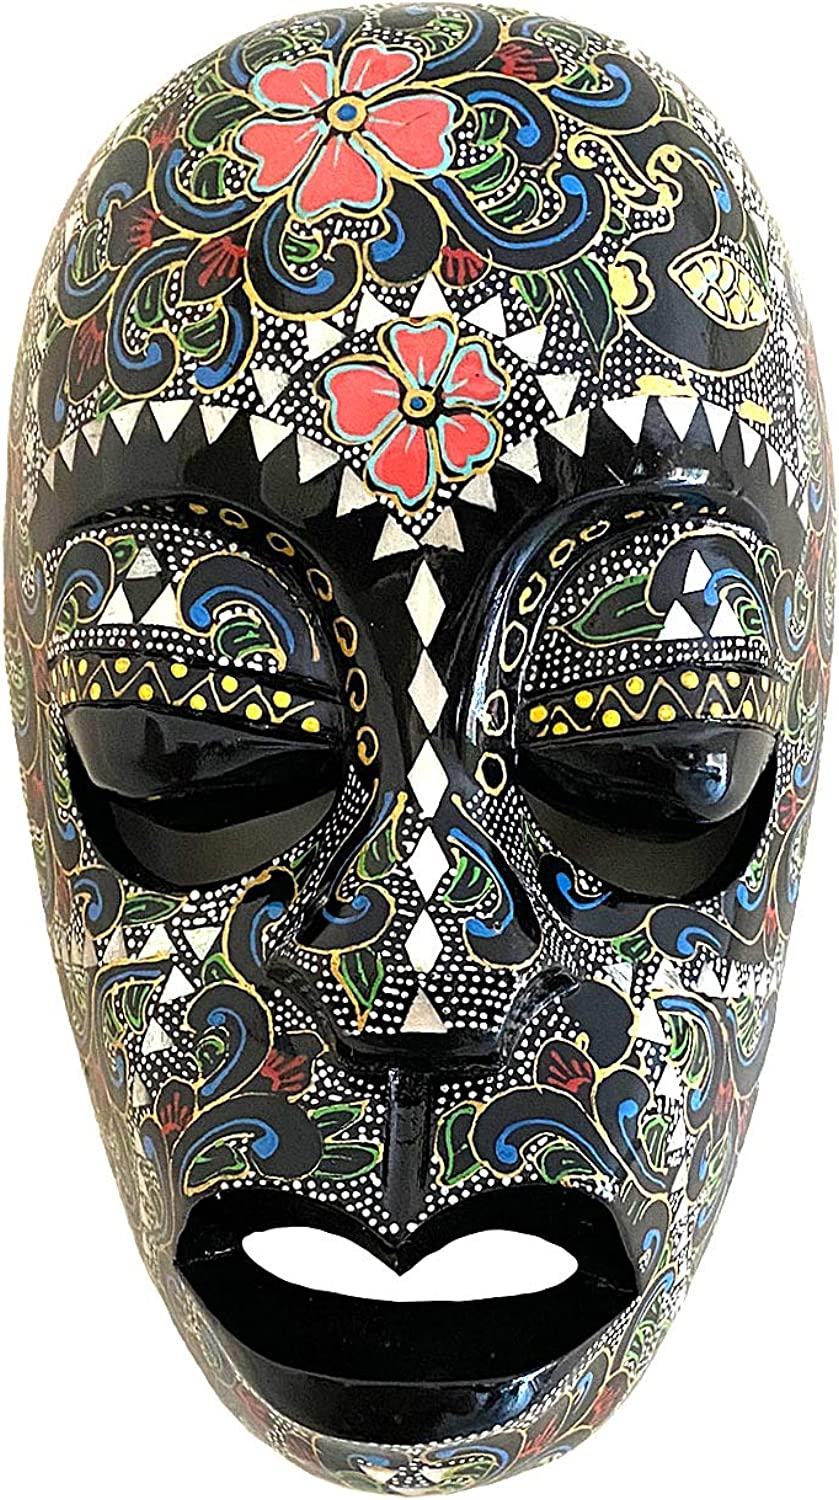 African Mask Wall Hanging Decor Sacred Goddess Peace Blessing Wooden Hand Crafted Tiki Mask With Mother Of Pearl Clothing Amazon Com